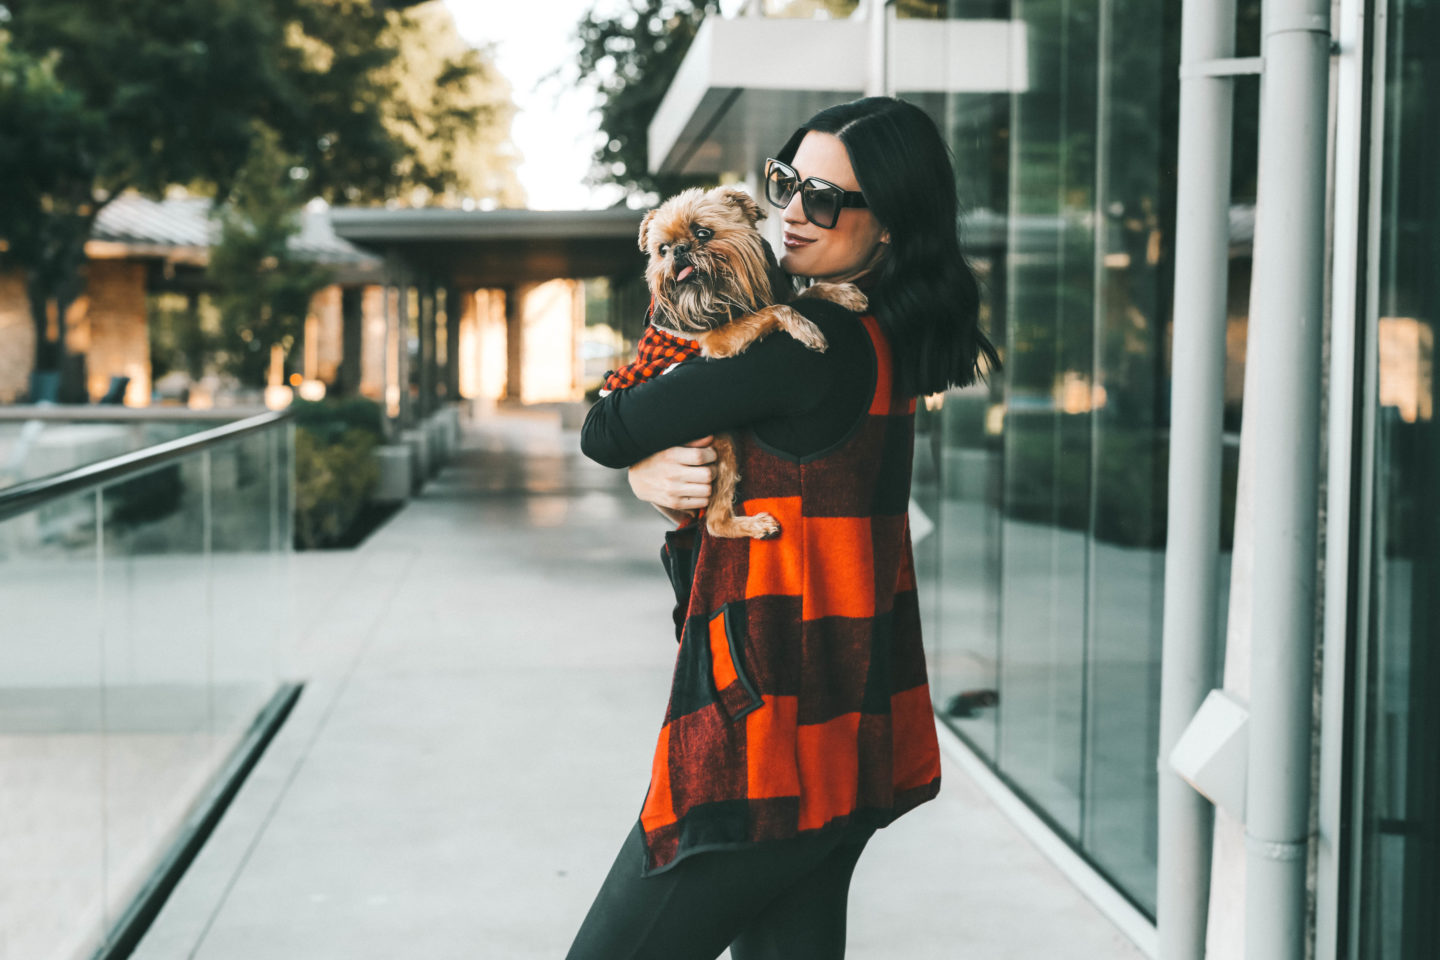 Matching Dog and Owner Outfits for the Holidays by popular Austin life and style blog, Dressed to Kill: image of an owner and her dog wearing an Amazon KIRJAUDU Womens Lapel Open Front Sleeveless Plaid Vest Cardigan with Pockets, Nordstrom Halogen Long Sleeve Modal Blend Tee, Nordstrom Spanx Faux Leather Leggings, Amazon GLOBALWIN Women's 1632 Black Grey Snow Boots, Bare Necessities BAREFOOT DREAMS COZYCHIC HEATHERED PLUSH SOCKS, and Chewy plaid sweater.